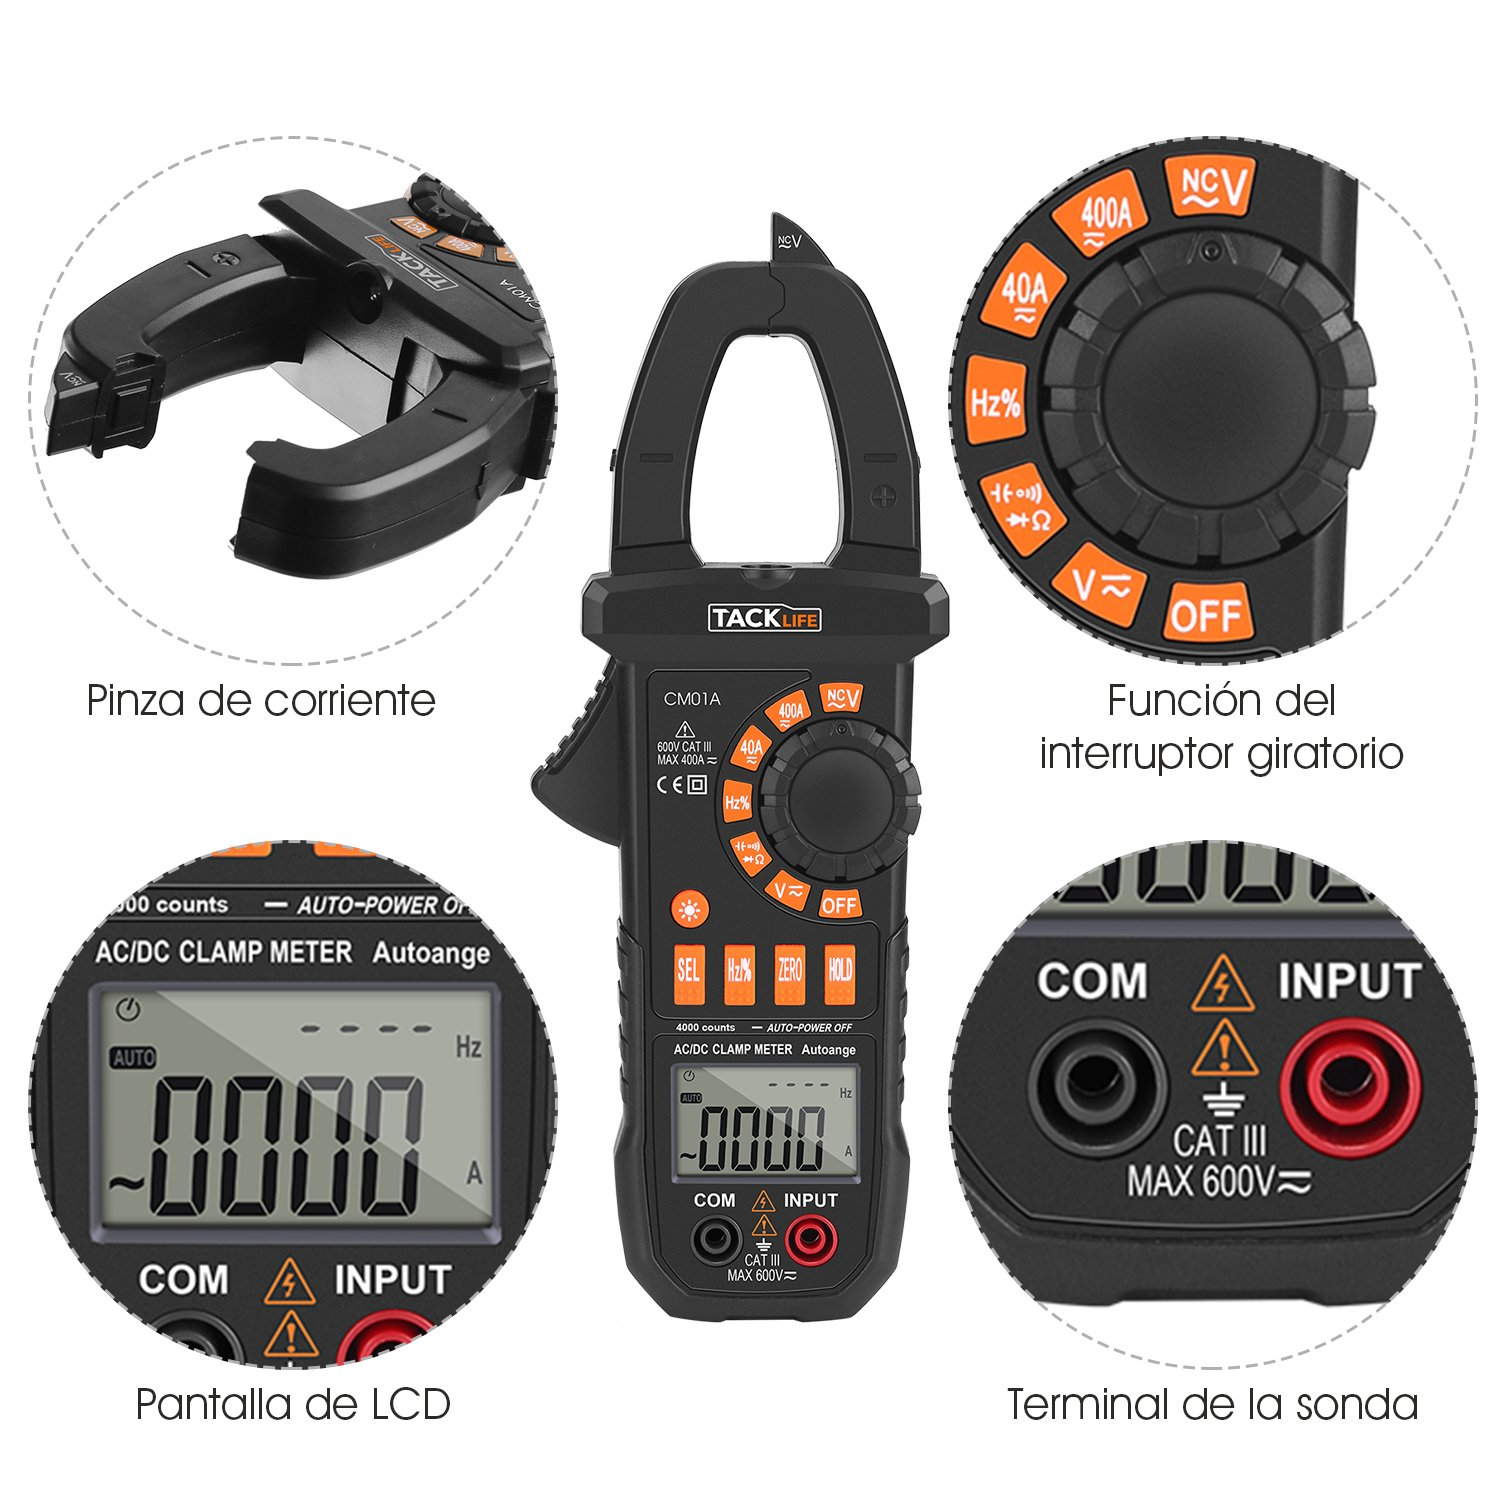 Oferta Pinza Multímetro Digital Tacklife CM02A por 16,99 euros (Cupón Descuento) 2 pinza multimetro digital